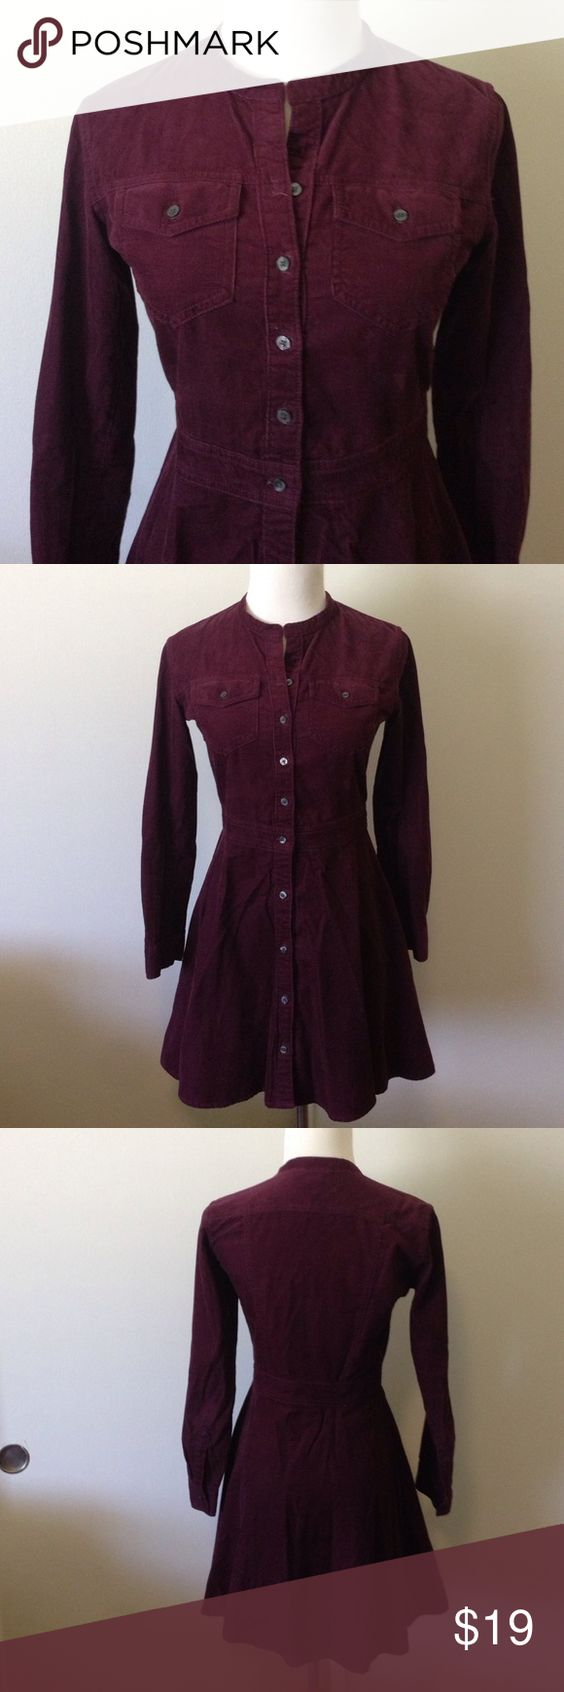 Gap dark purple long slv corduroy dress Sz 0petite Re-Posh as the petite length just didn't work for me. Dark eggplant purple corduroy shirtdress with a-line skirt. Perfect with boots & tights for winter! Buttons all the way down front. 7/8 sleeves. Price firm unless bundled. GAP Dresses